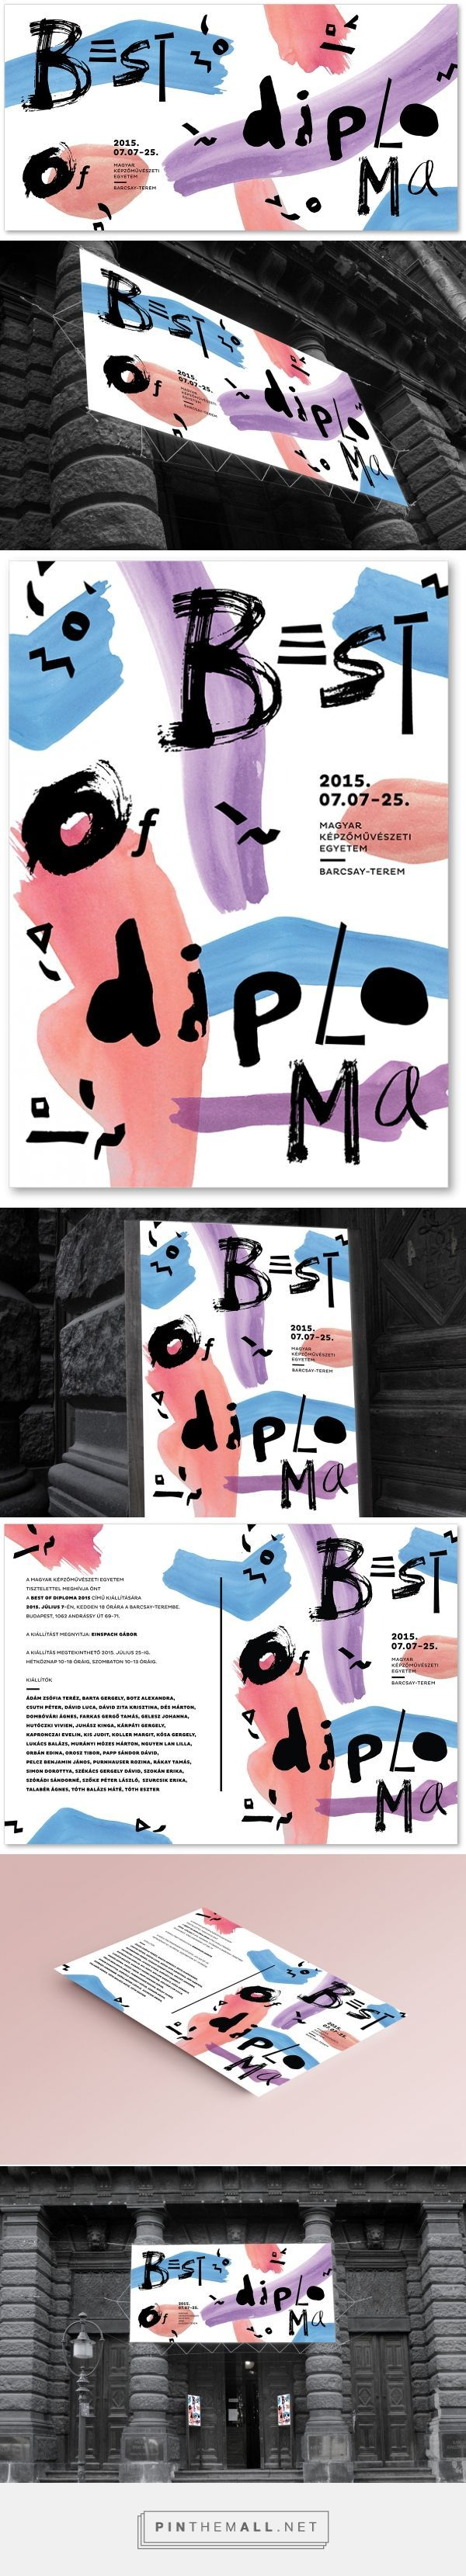 Best of Diploma 2015 Fine Arts Event Branding by Lili Thury   Fivestar Branding – Design and Branding Agency & Inspiration Gallery